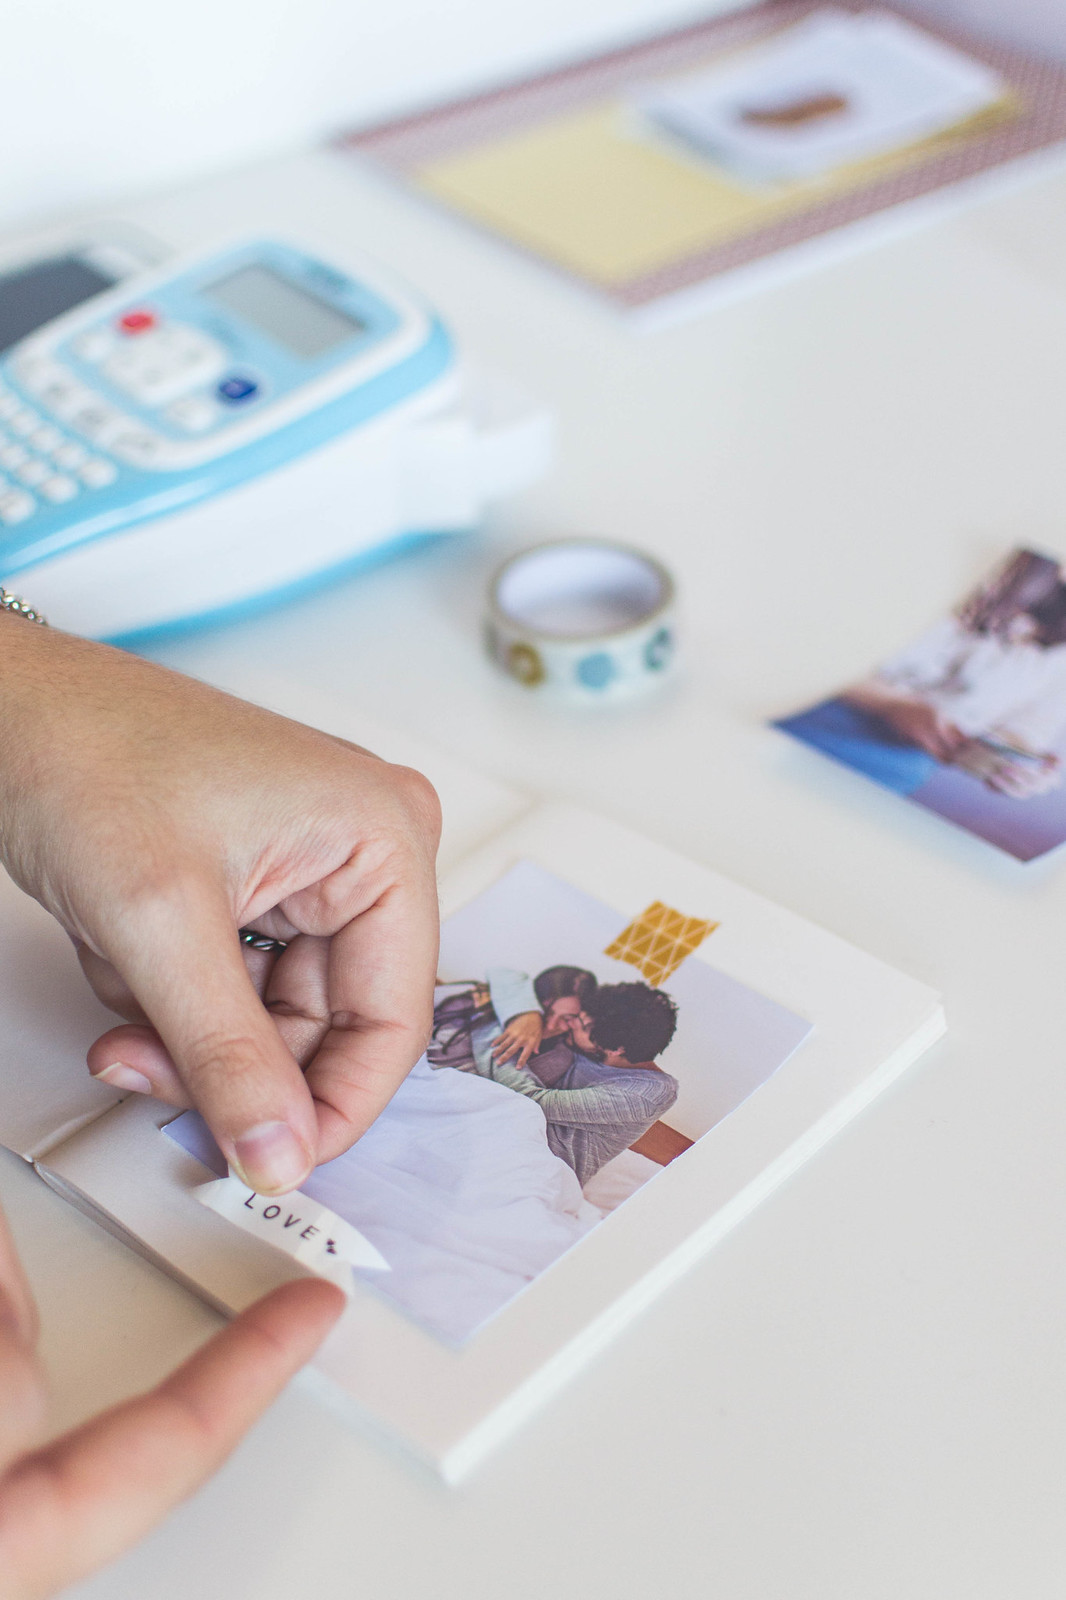 Add notes to your photos in your notebook with personal organizer Brother's labeller